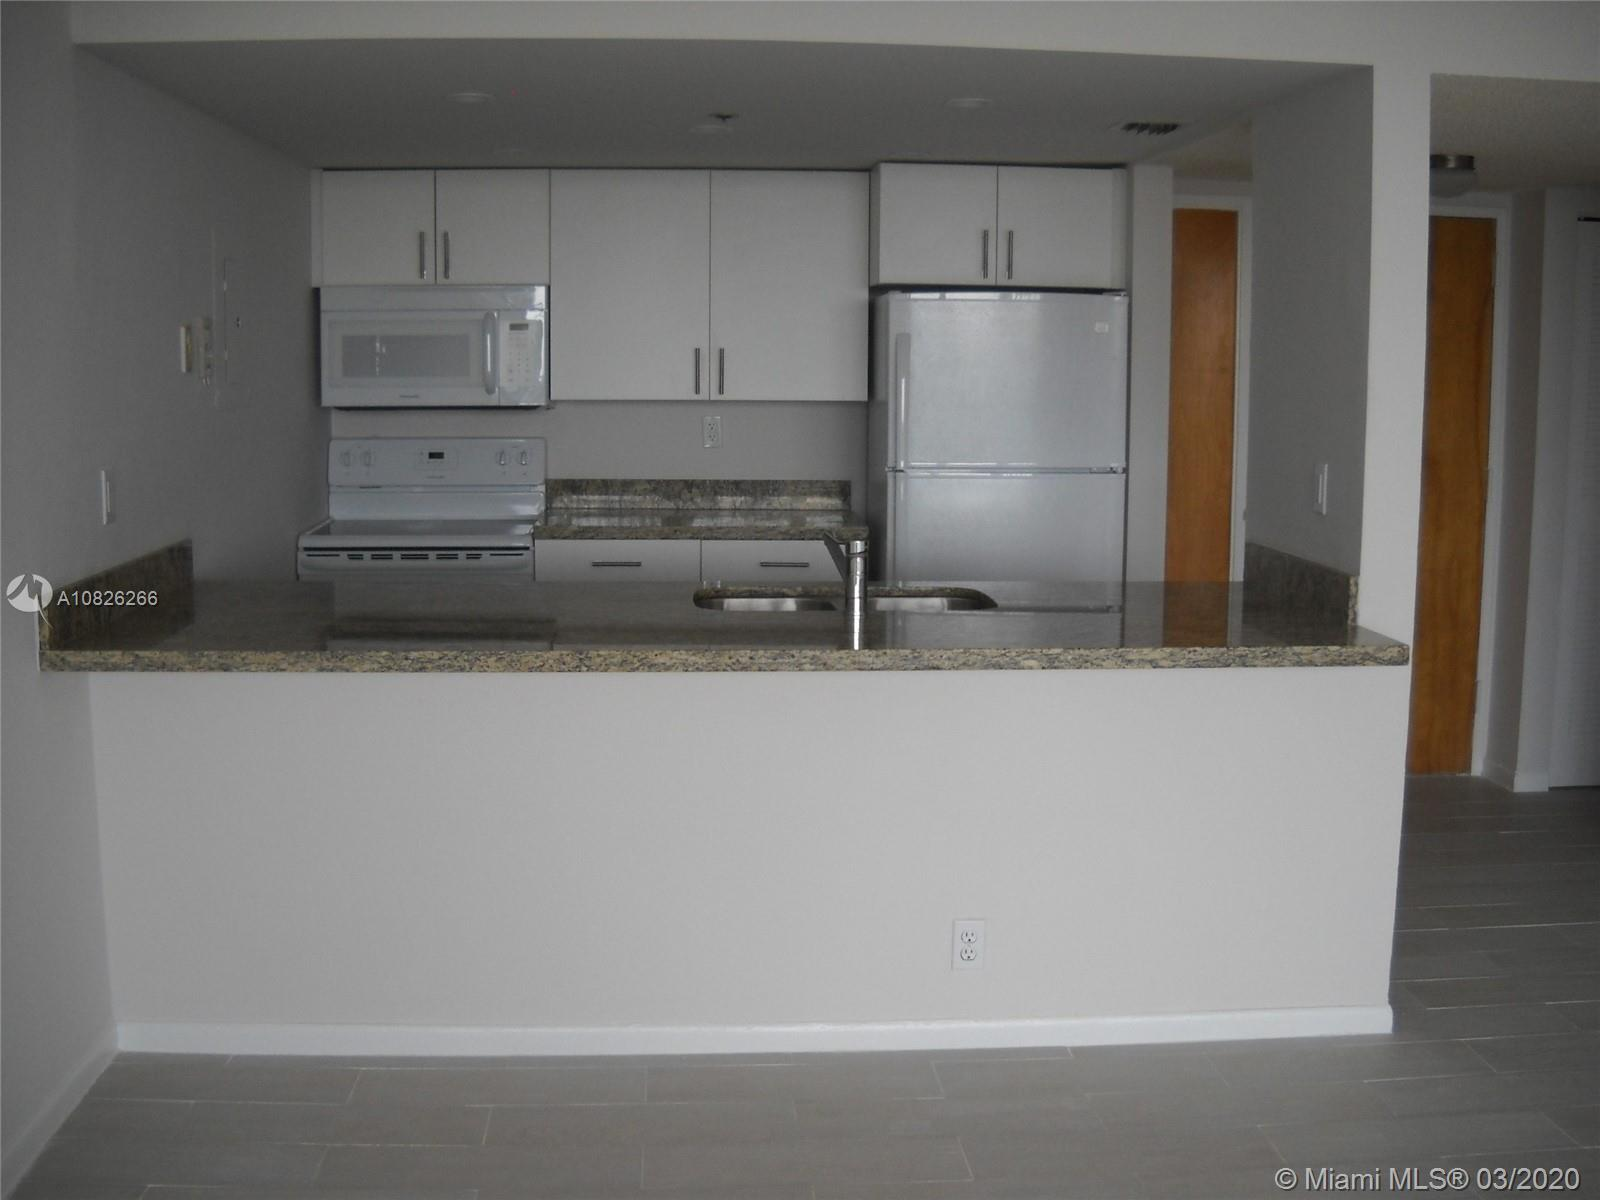 2 bedrooms and 2 full bathrooms. Gorgeous views from every where. Split floor plan. Bright unit with